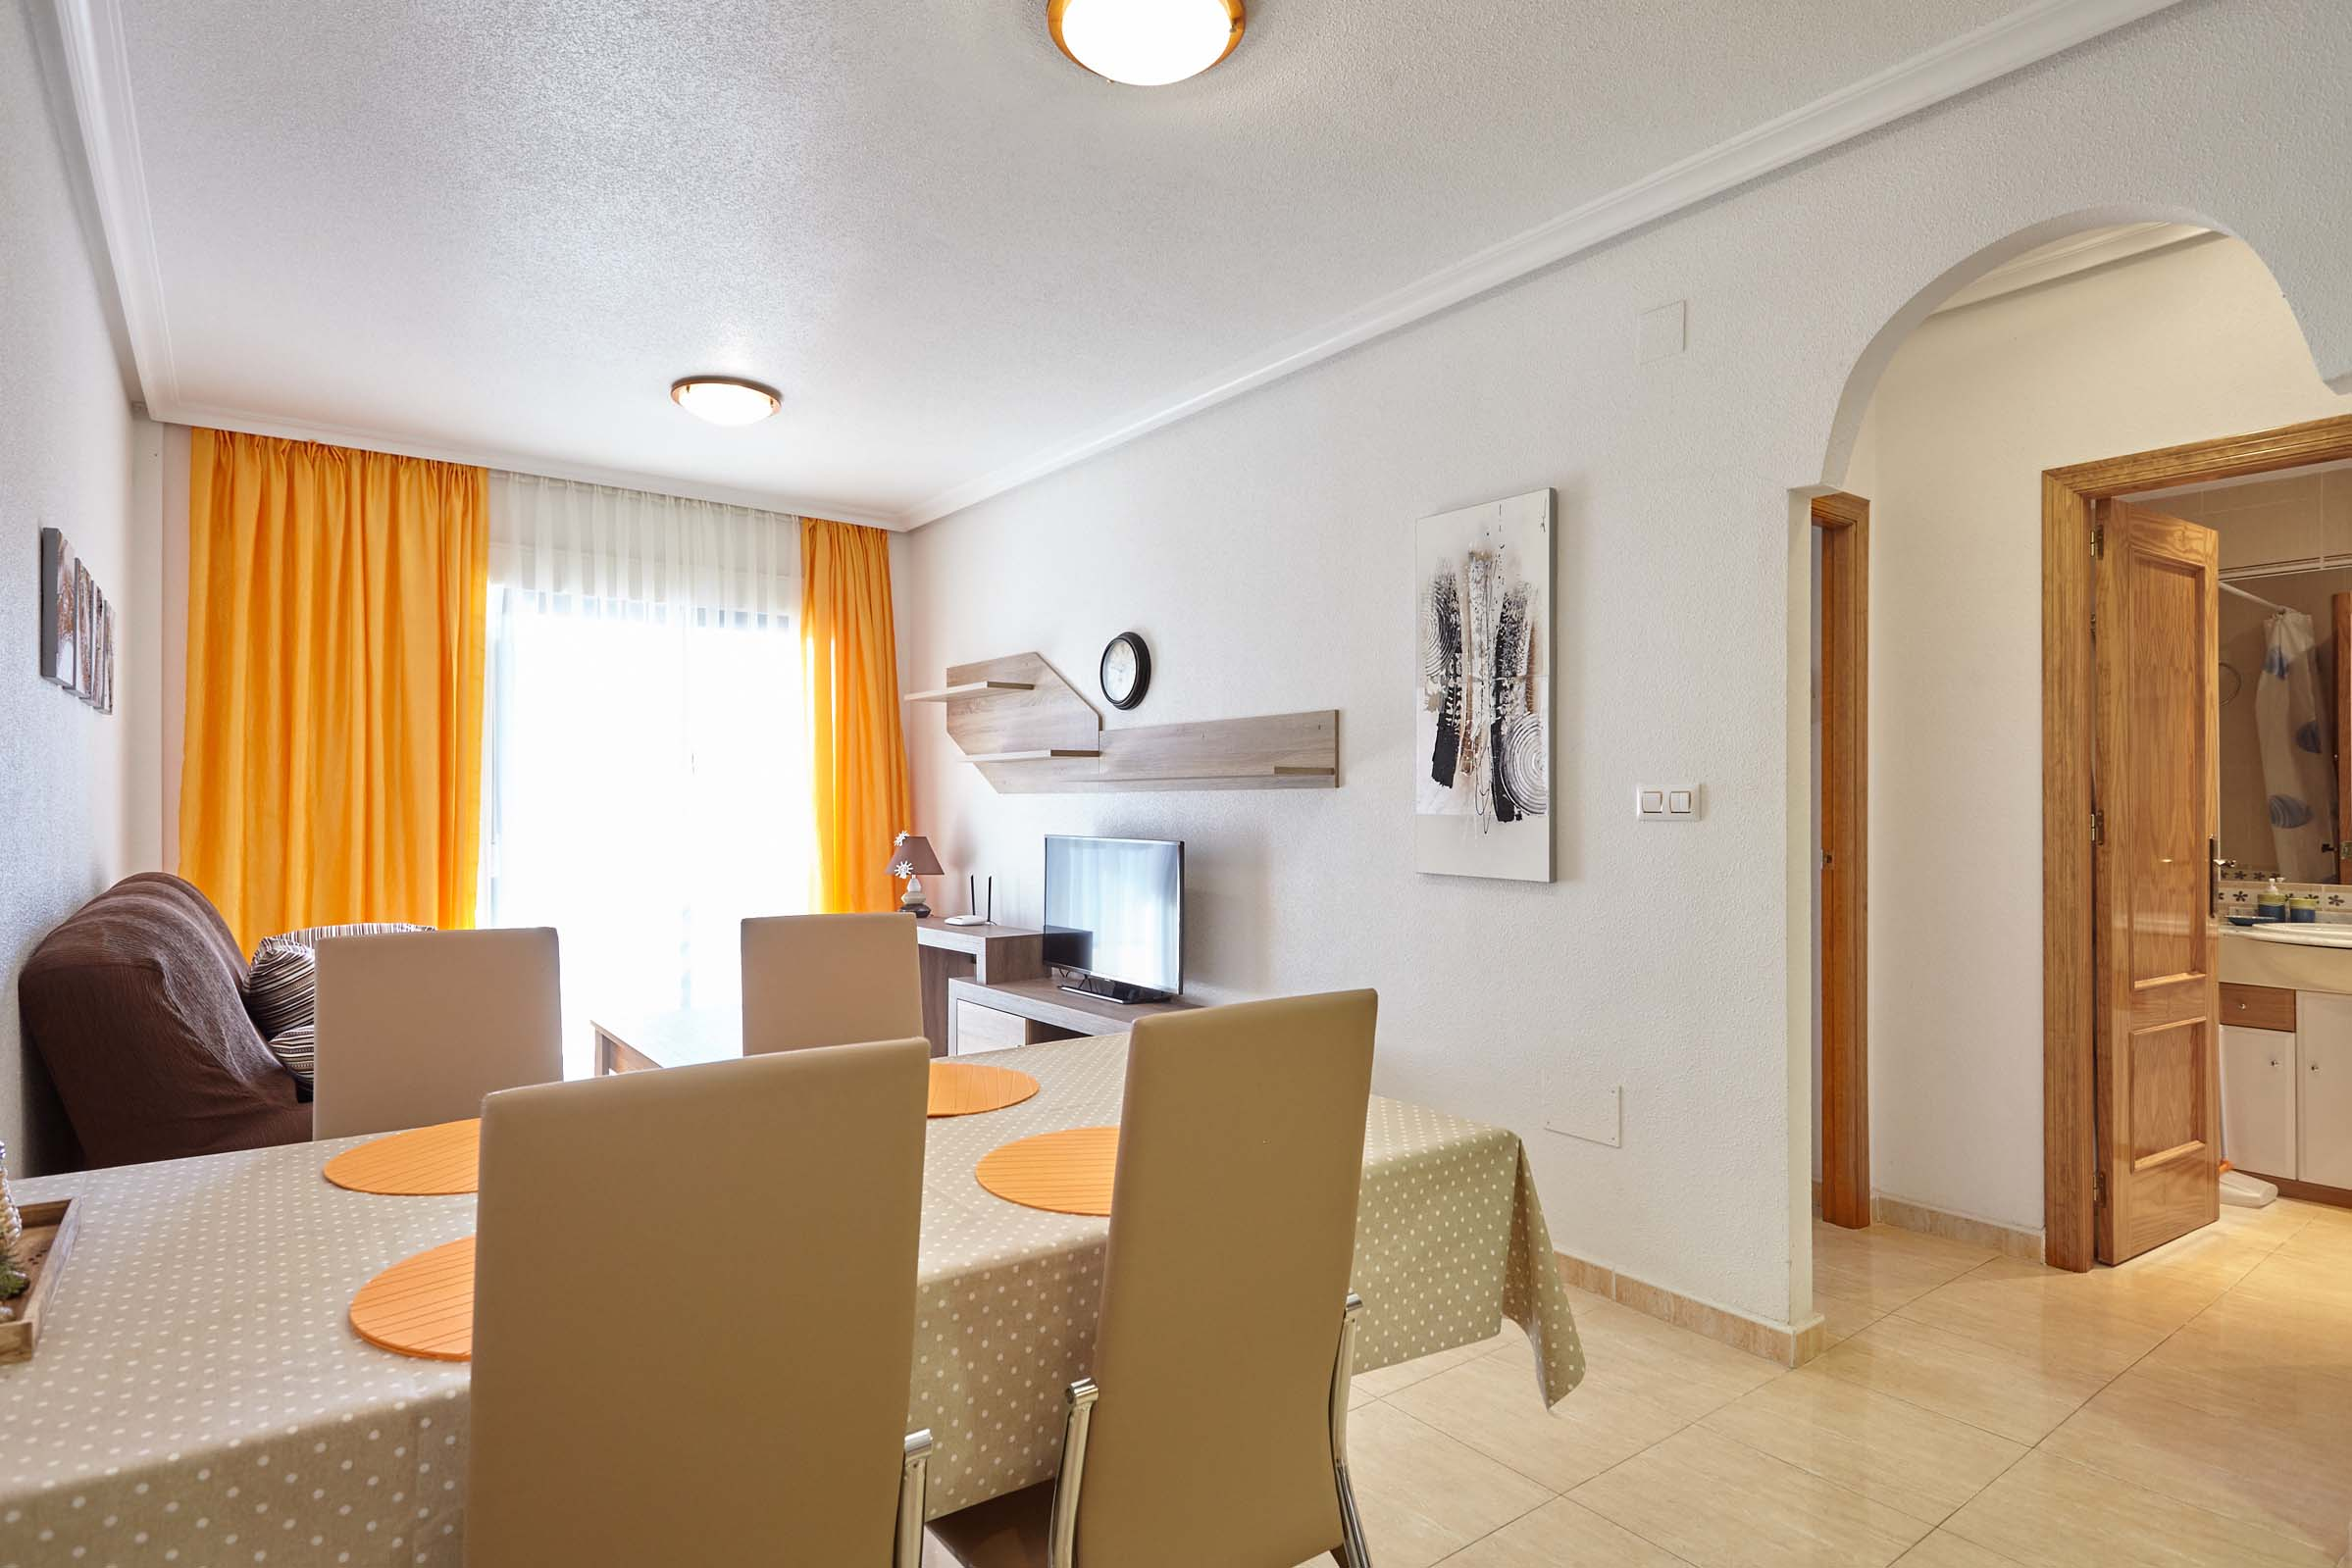 Apartment Espanhouse La Zenia 105 photo 21581631